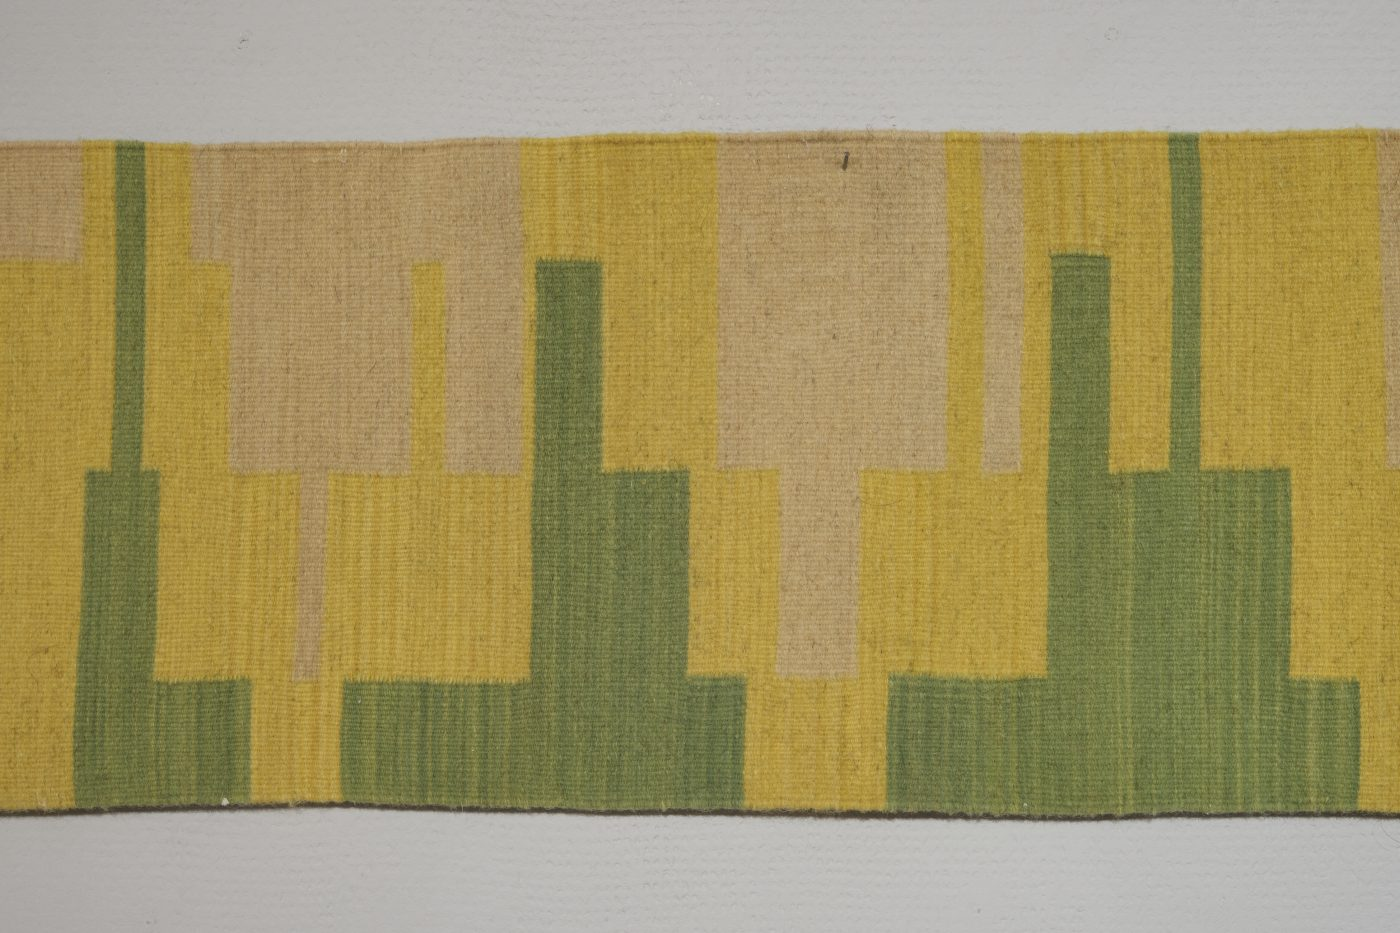 Handwoven long thin rug, with block pattern in greens, yellows and neutrals